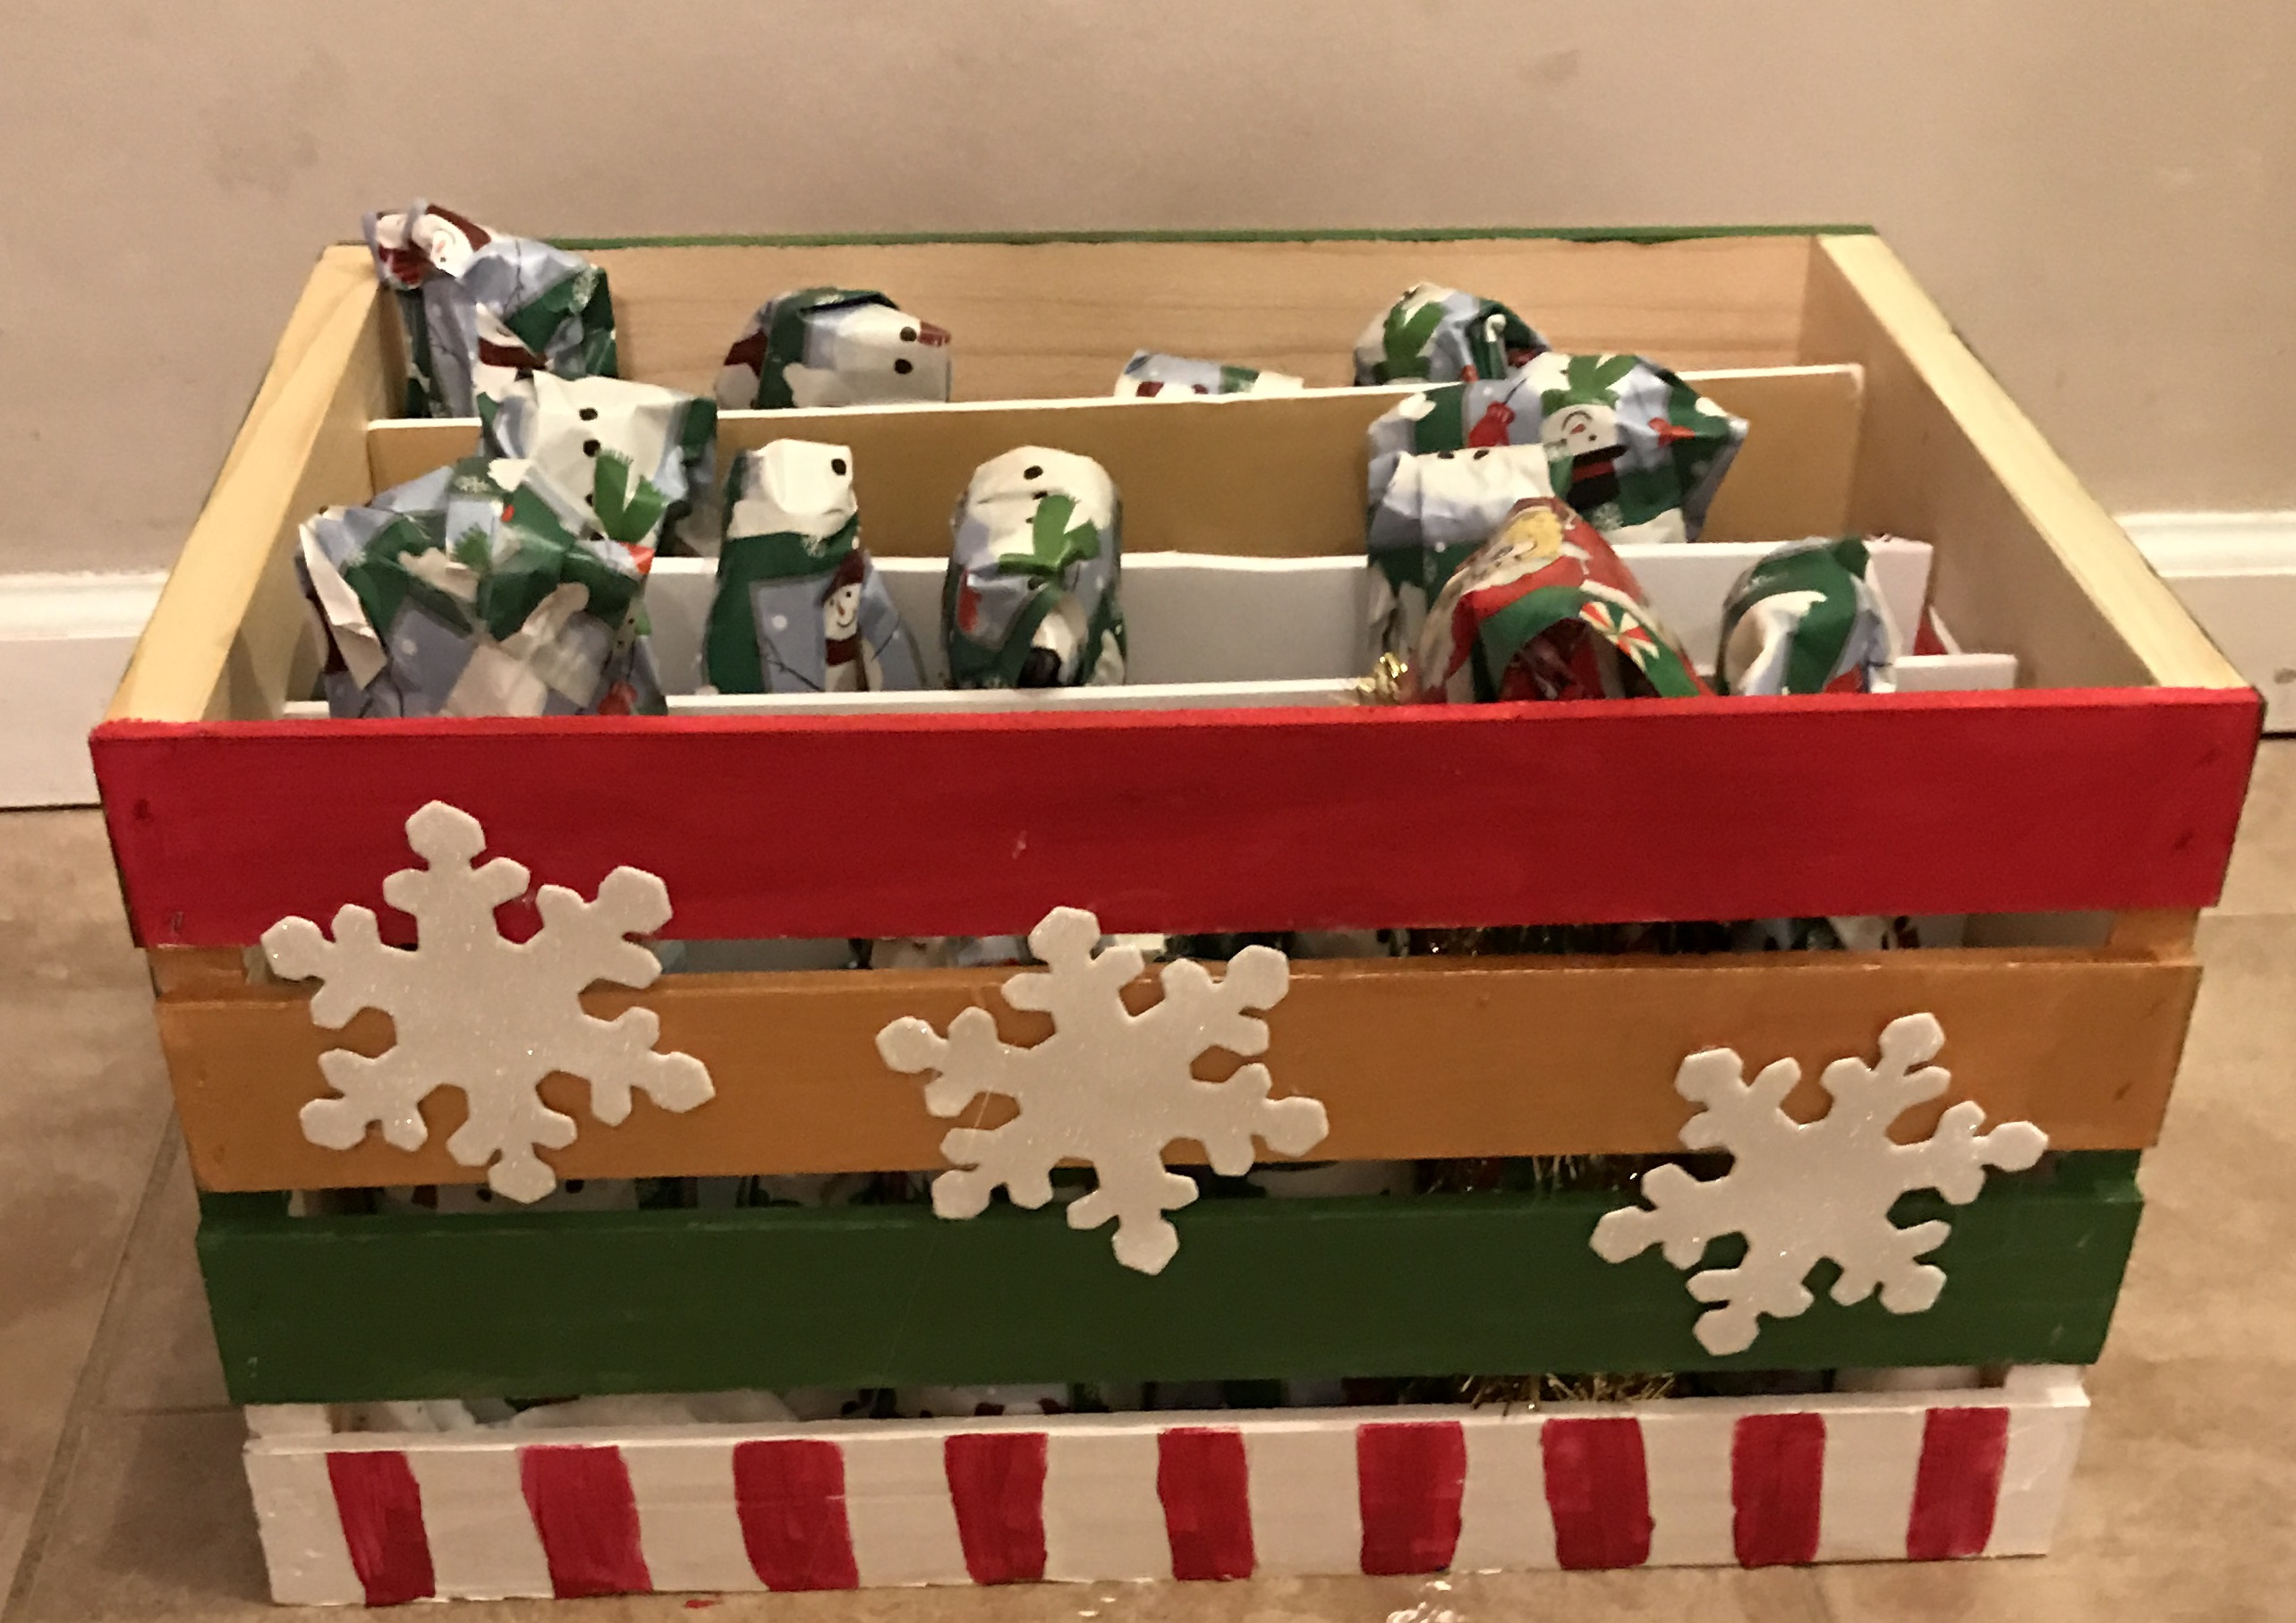 Advent Calendar Design Your Own : Make your own diy beer advent calendar the drink nation